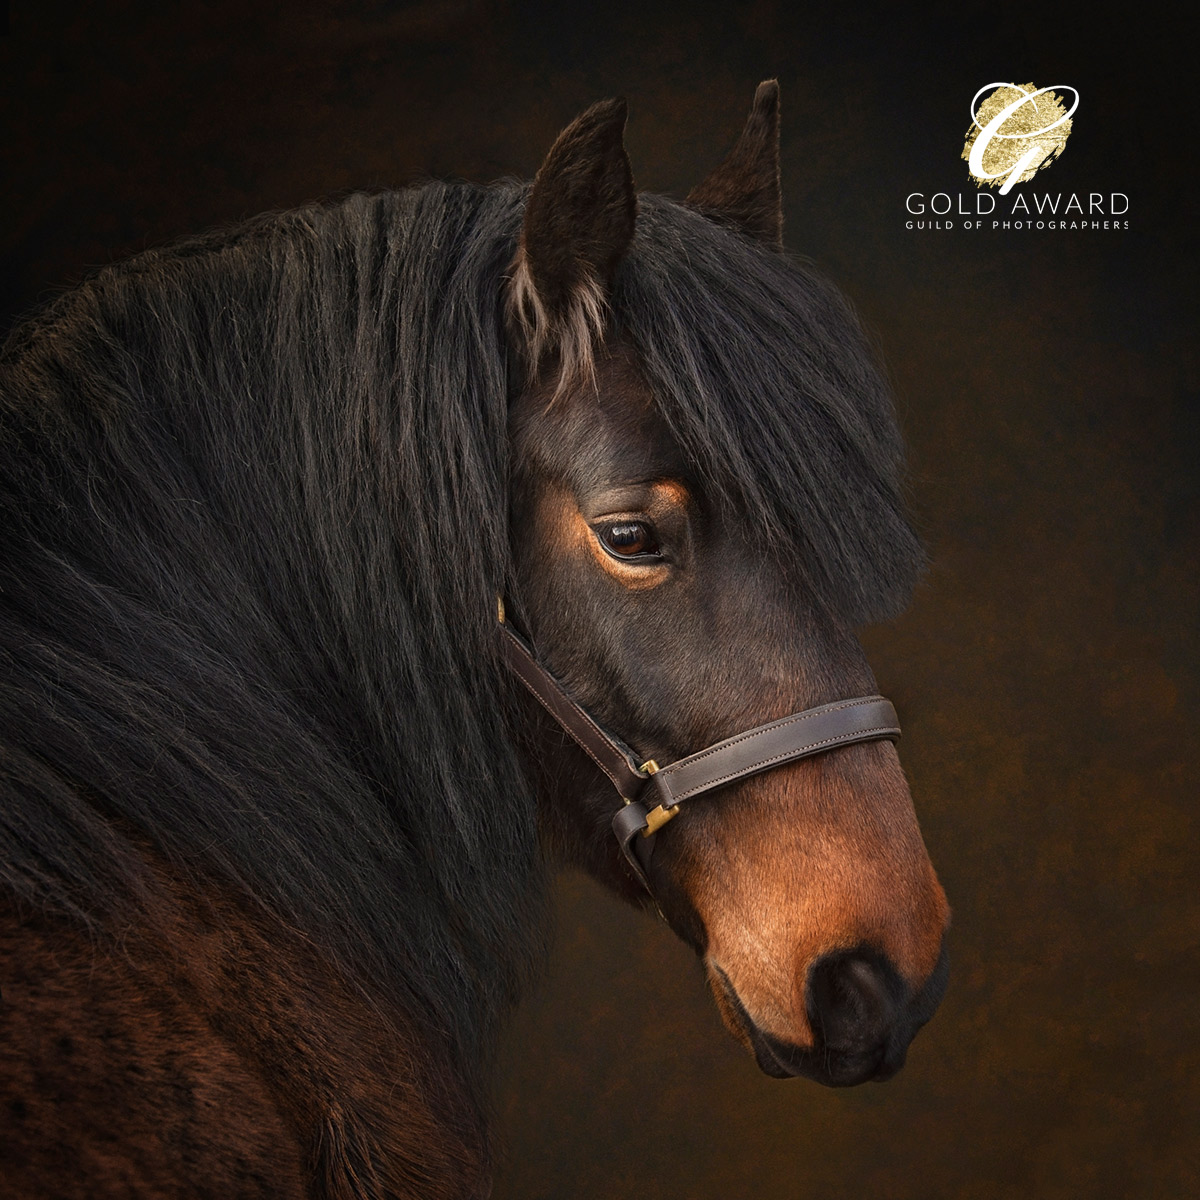 Gold awarded equestrian portrait, by the guild of photographers